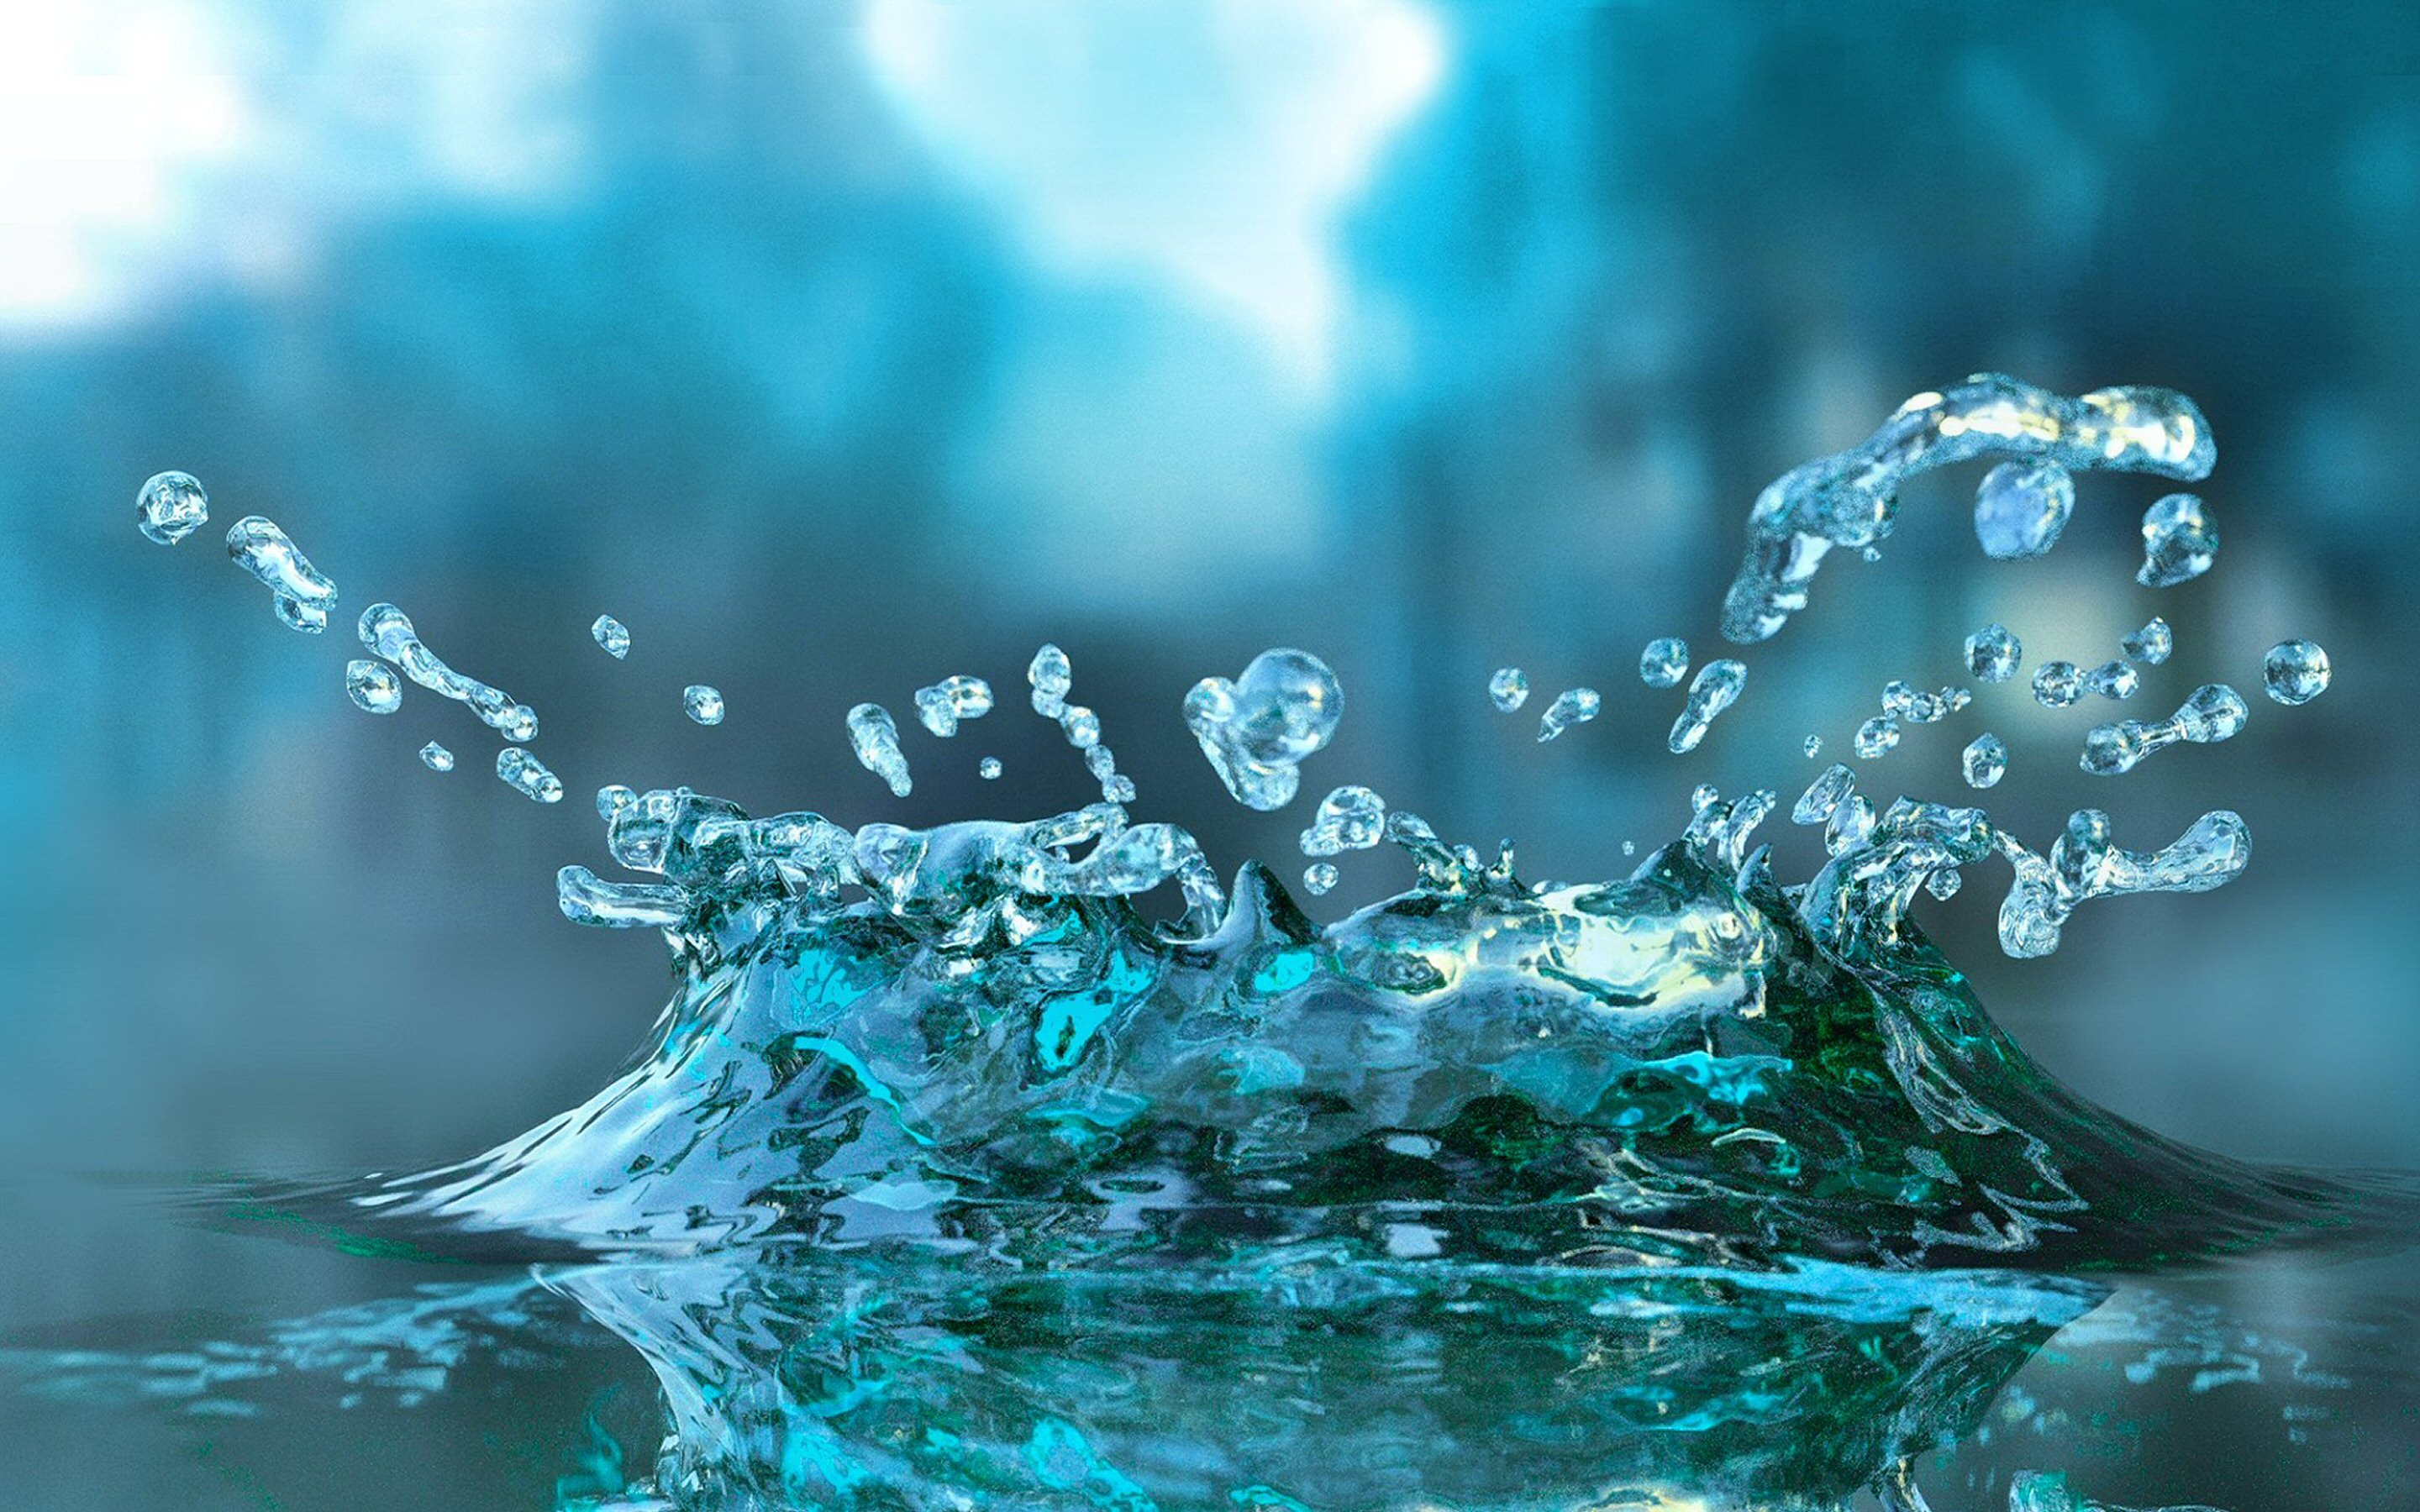 207 water drop hd wallpapers background images wallpaper abyss